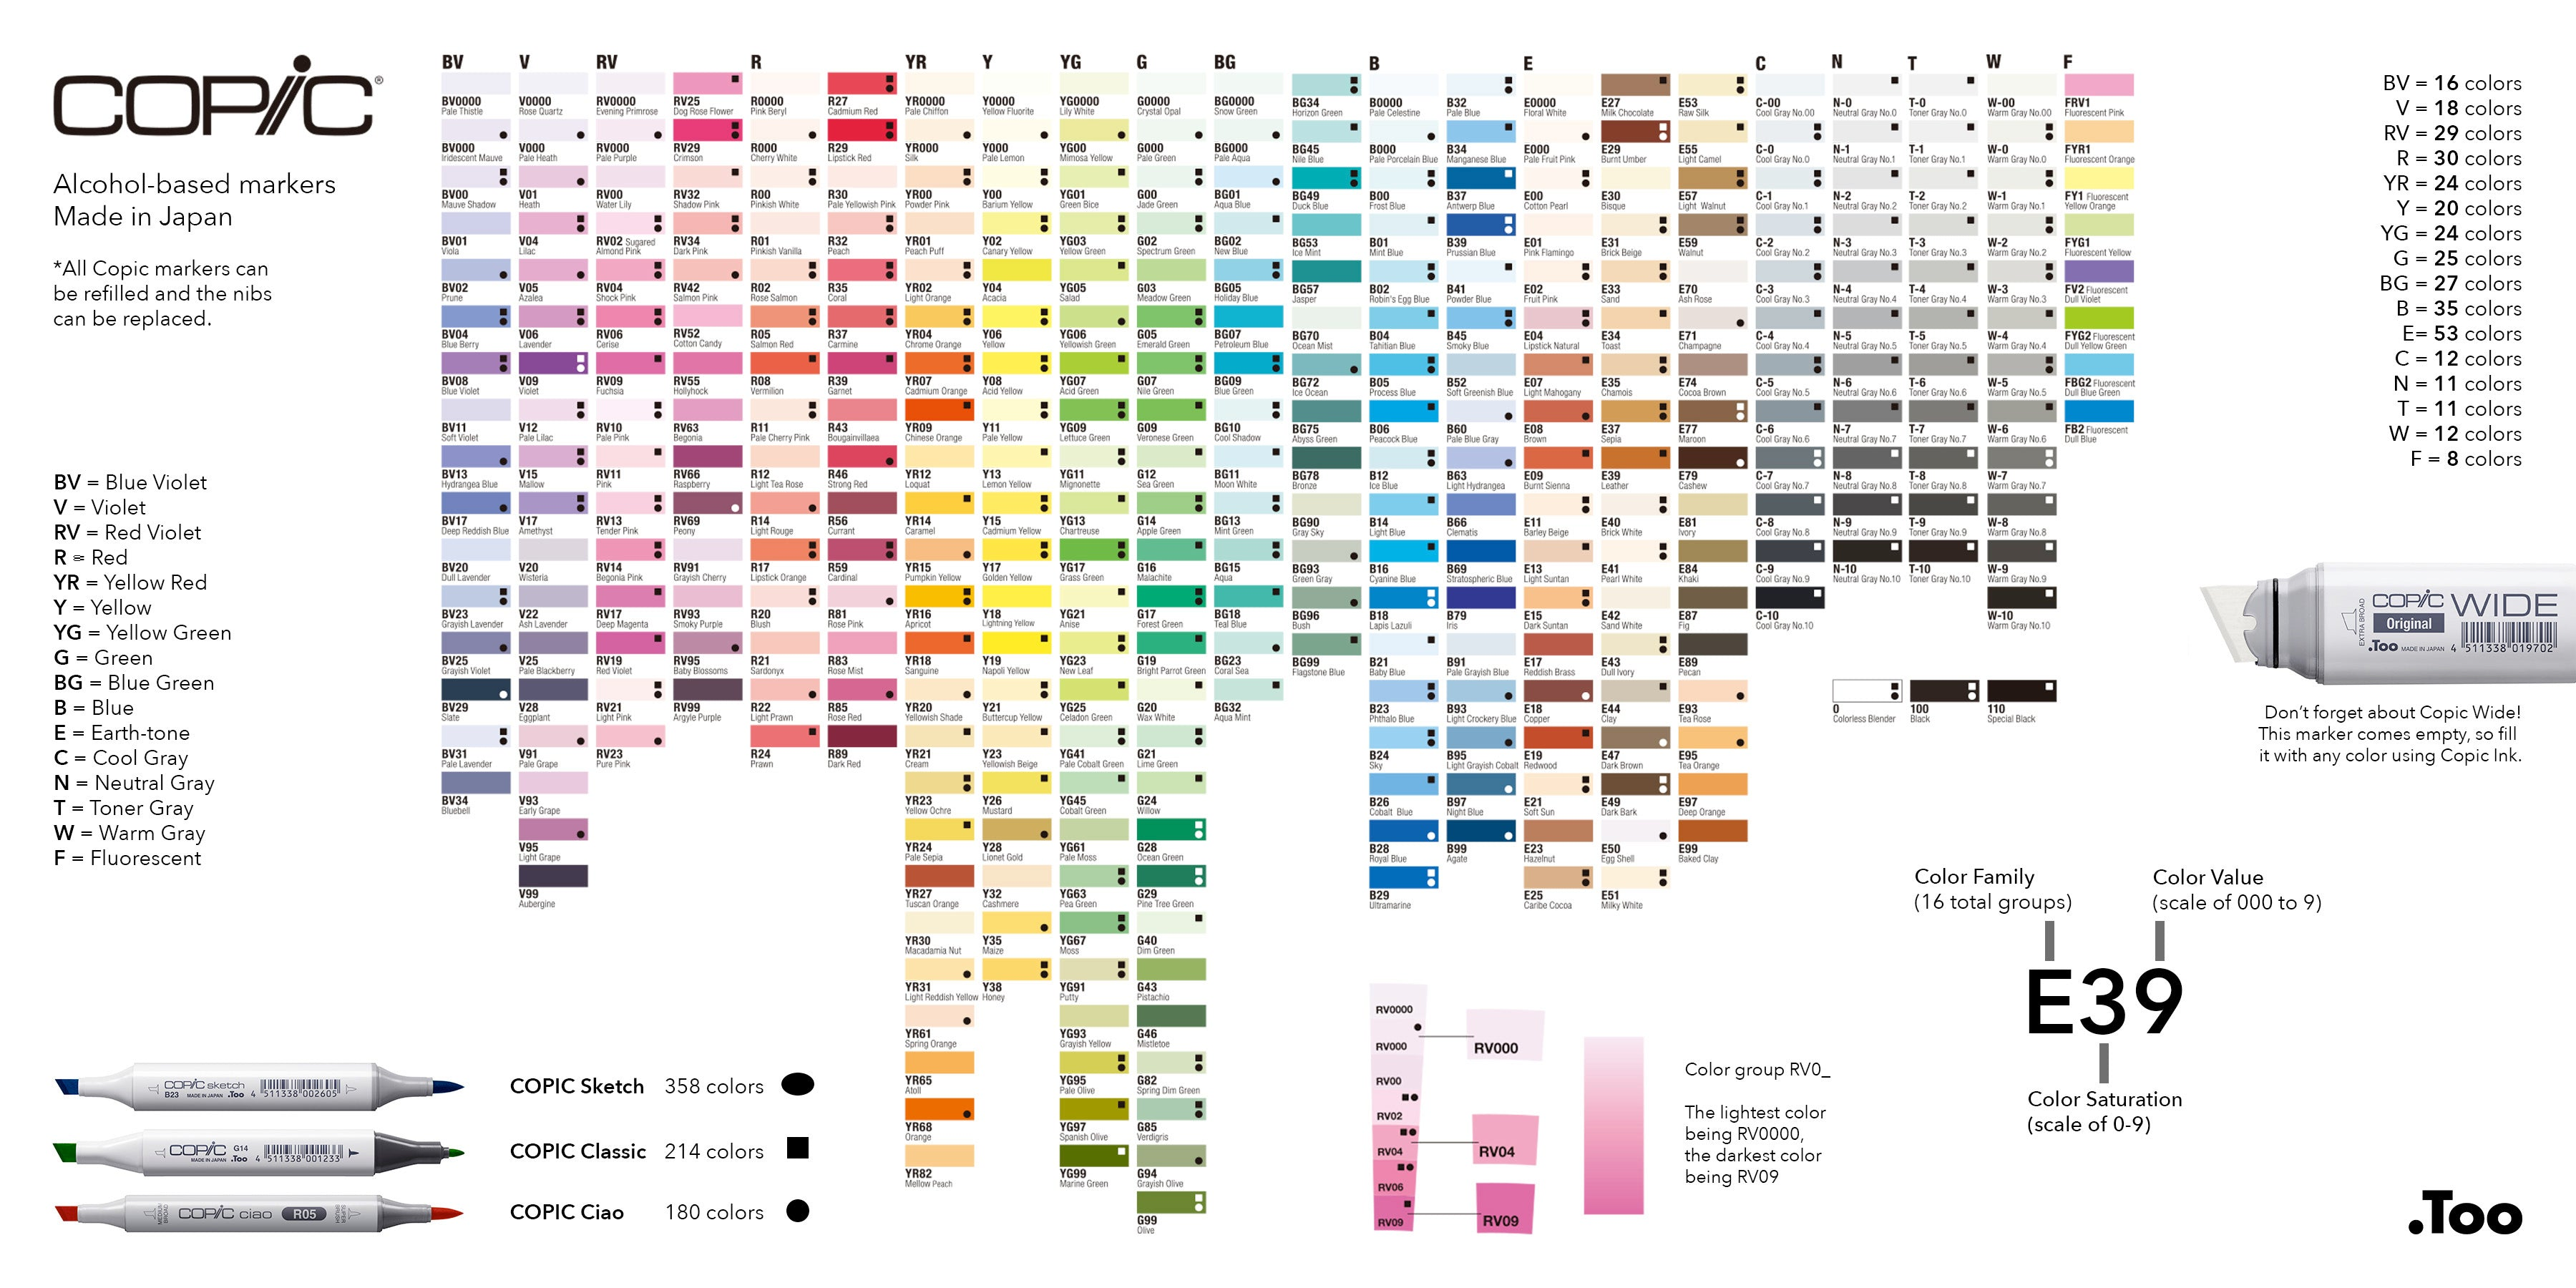 Complete color chart